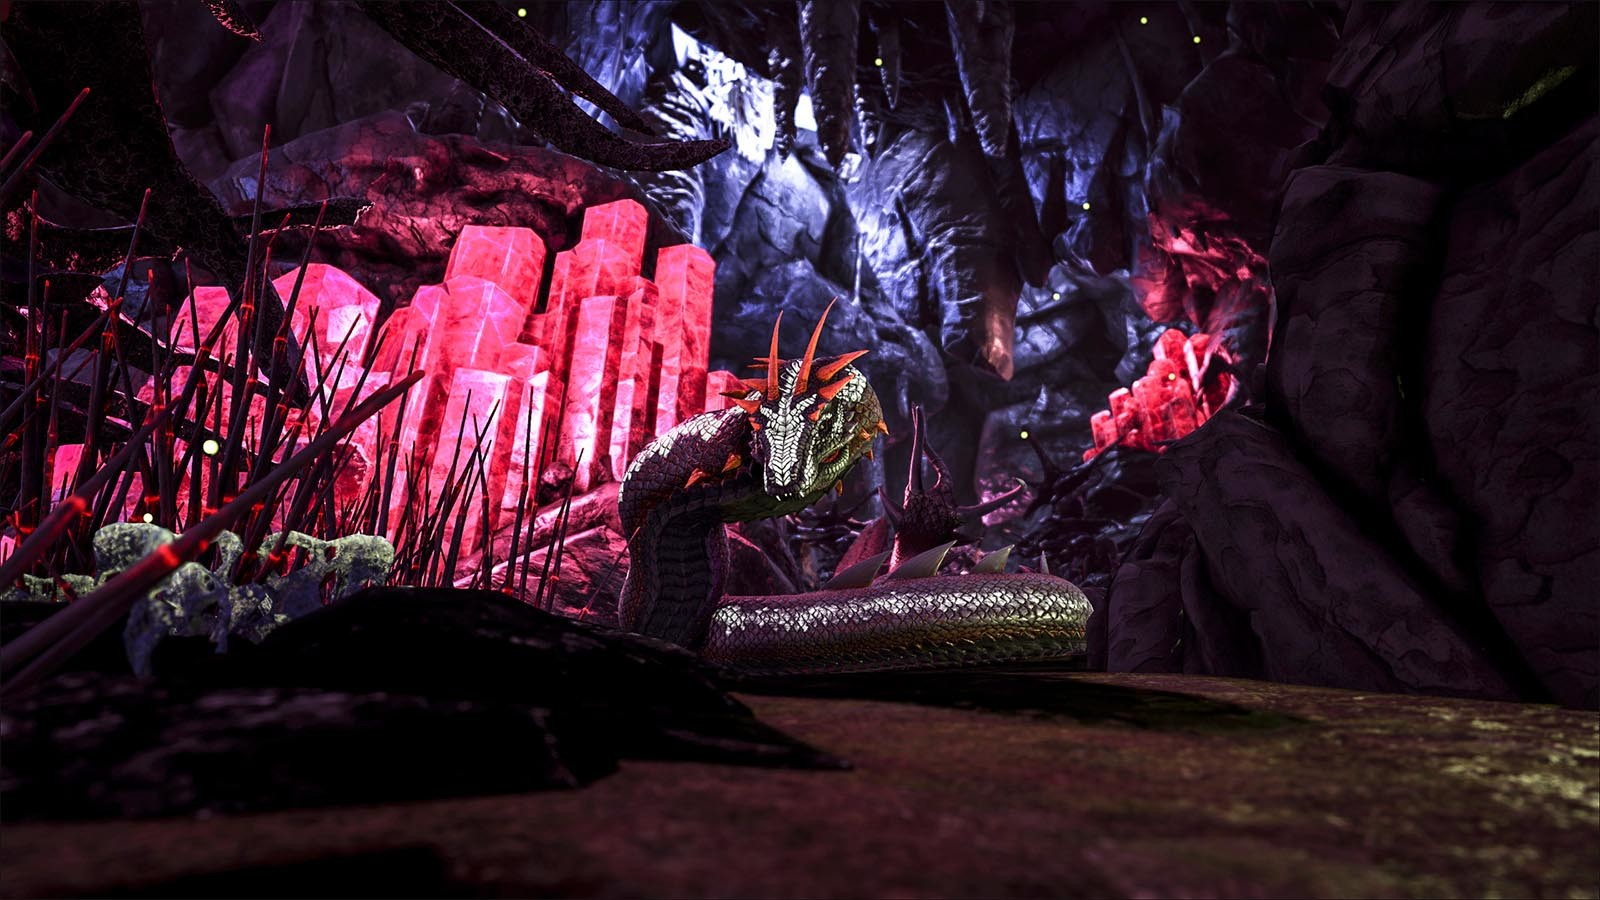 ARK: Aberration - Expansion Pack [Steam CD Key] for PC, Mac and Linux - Buy  now